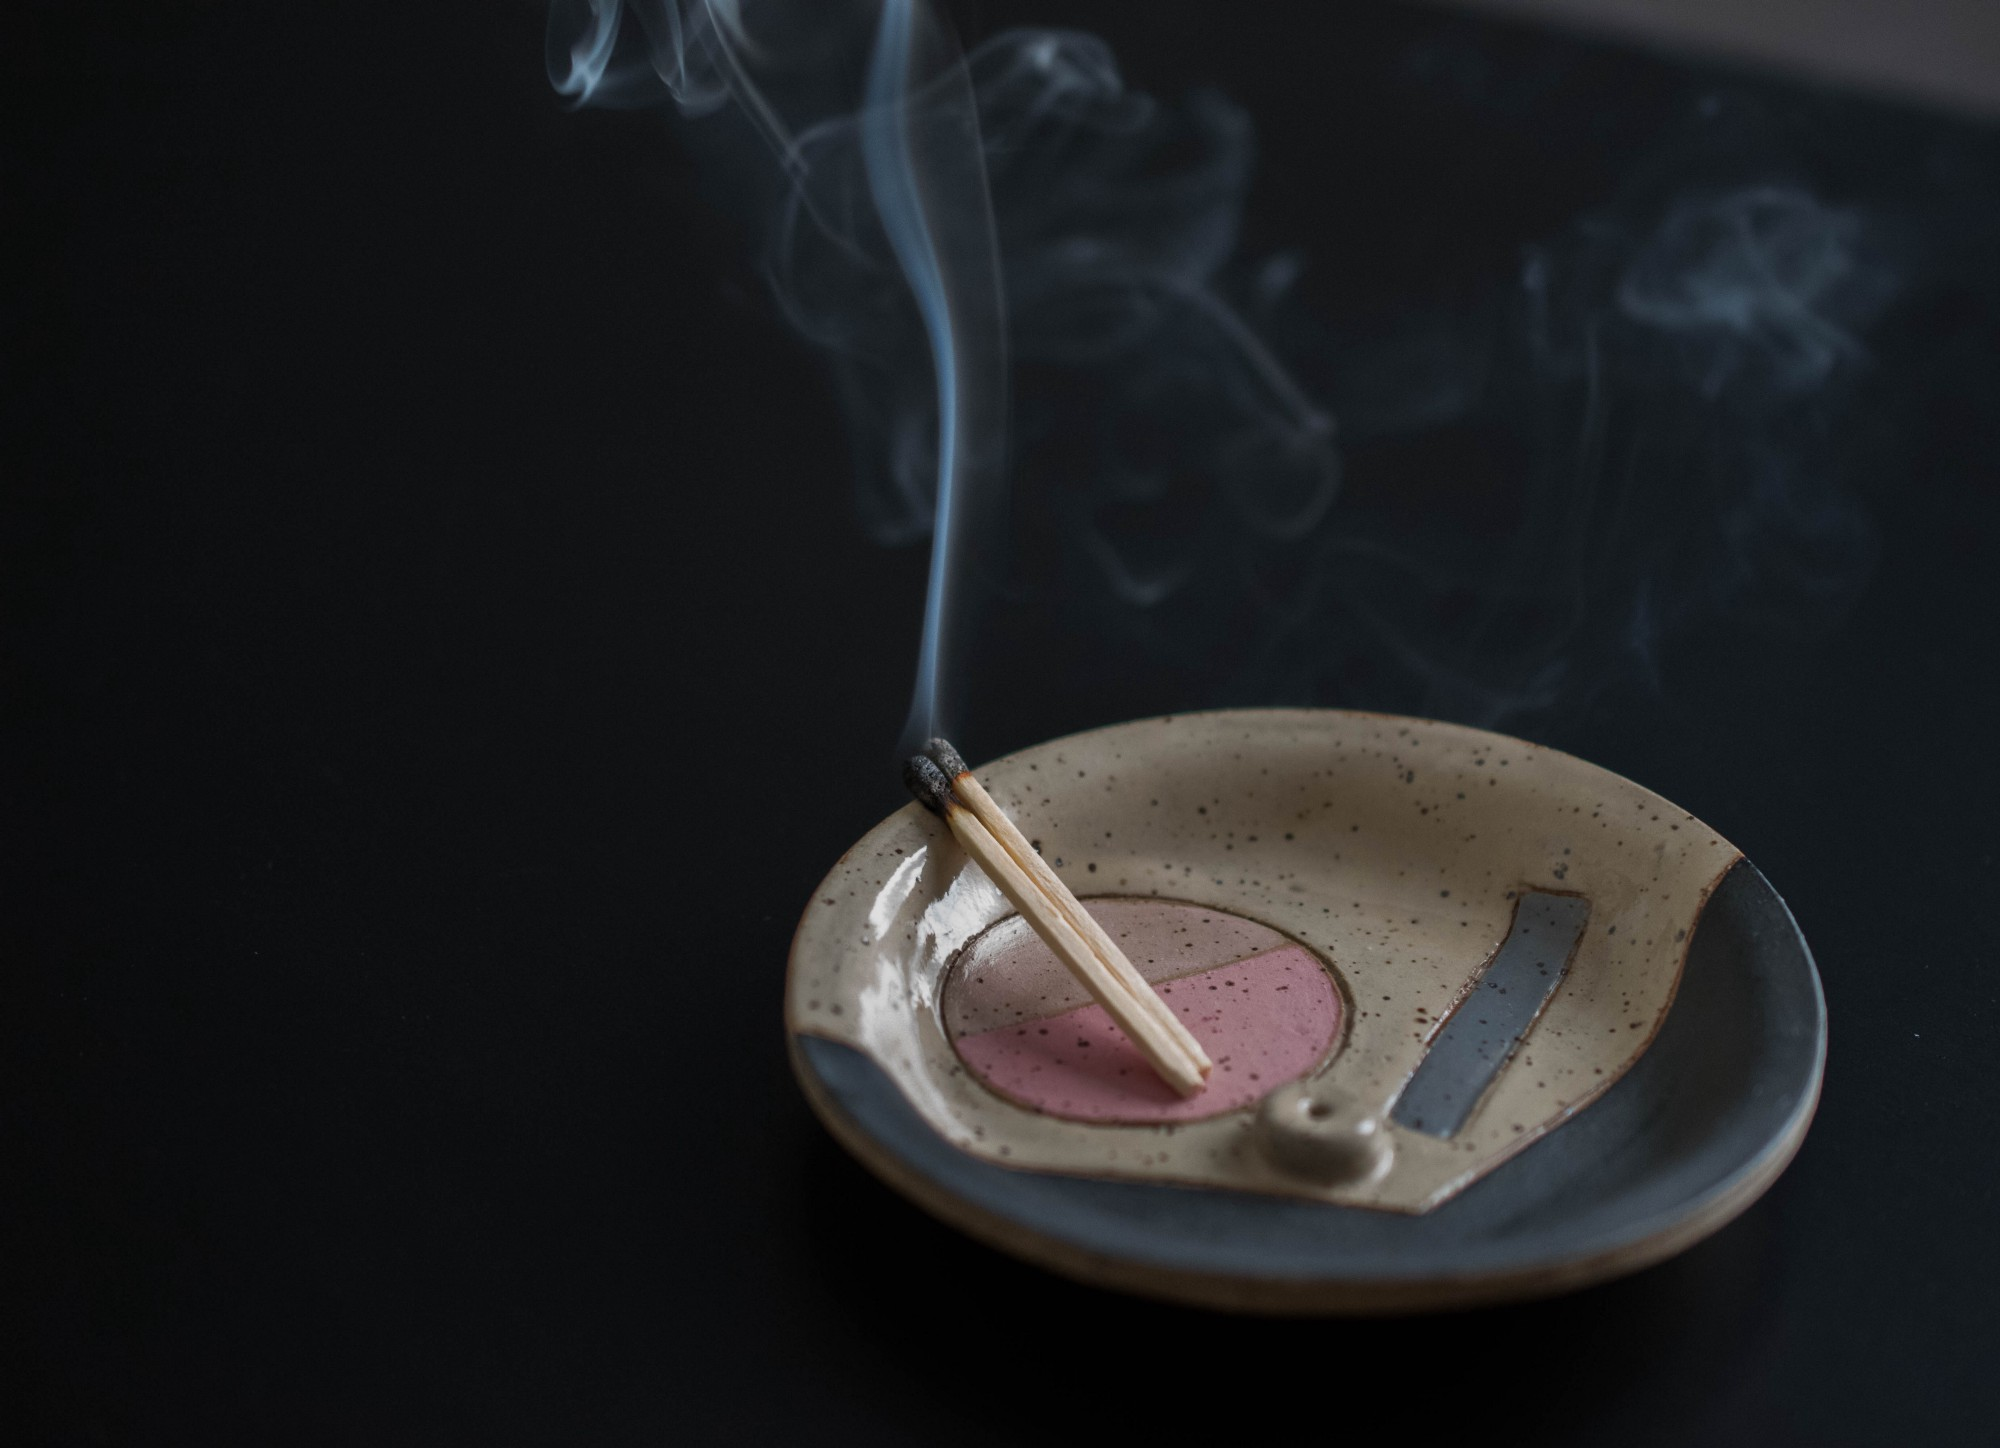 Handmade Incense Catchall Dish by Gabrielle Silverlight